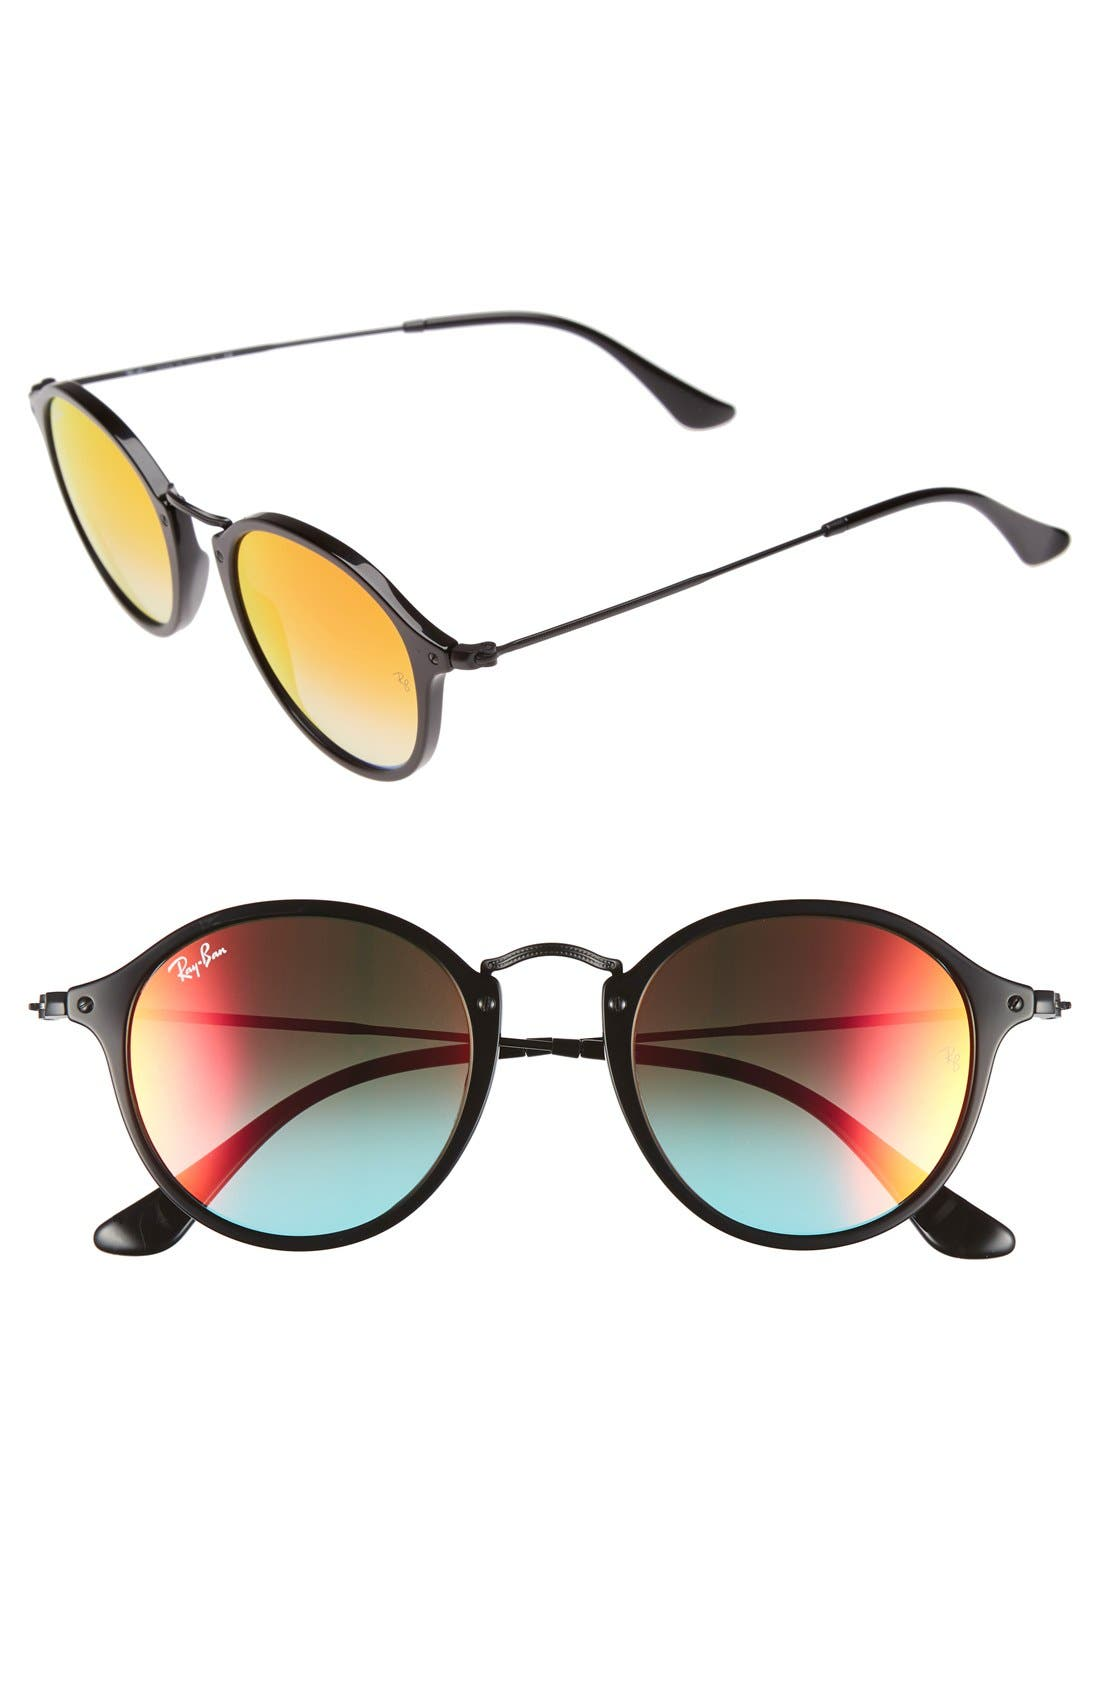 Main Image - Ray-Ban Icons 49mm Round Sunglasses